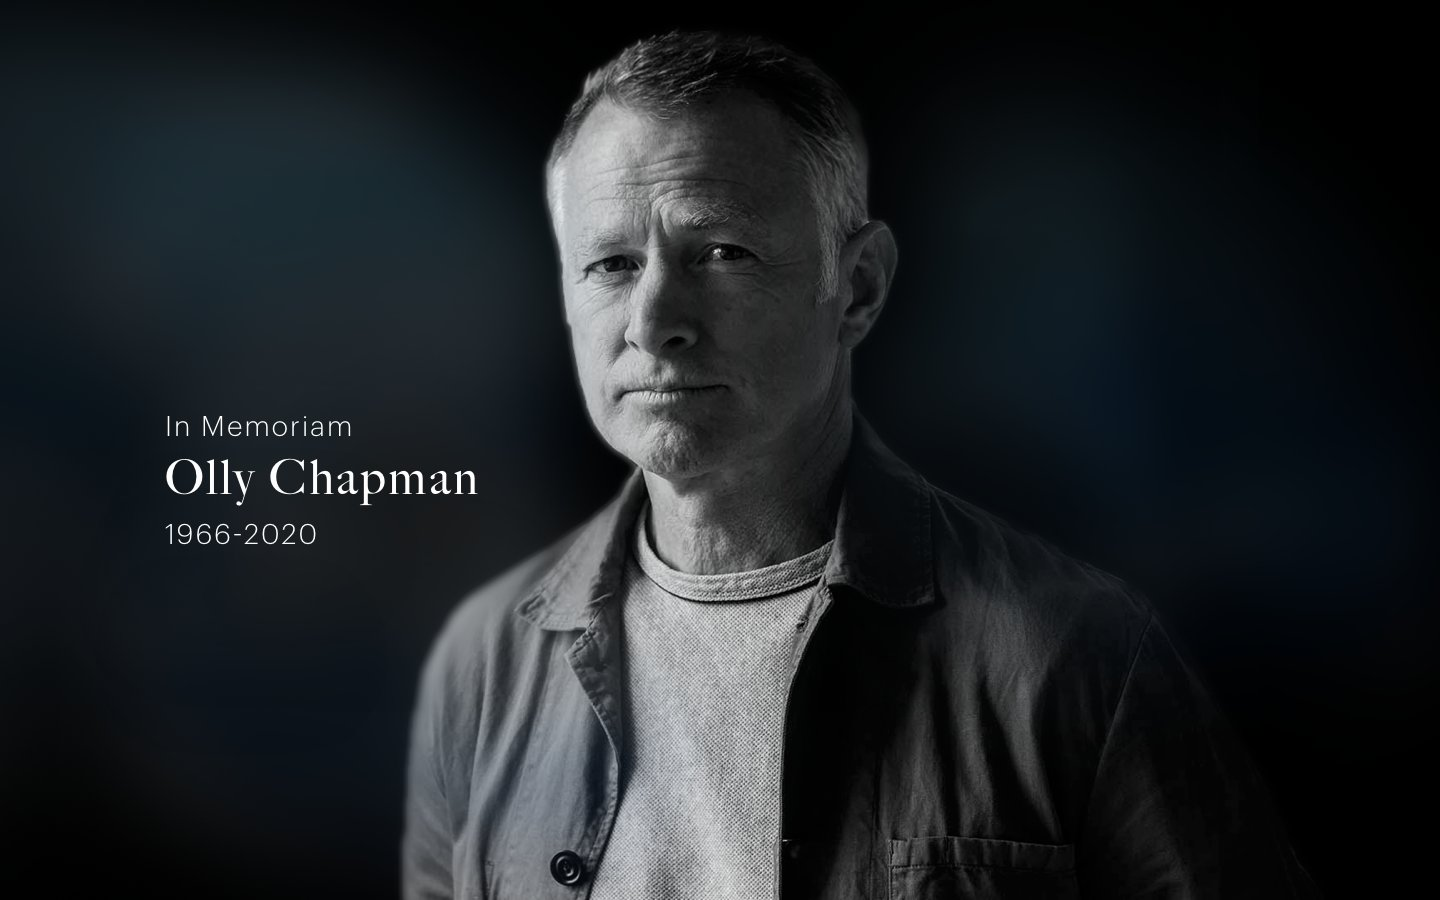 Industry Shocked and Saddened by Death of Olly Chapman